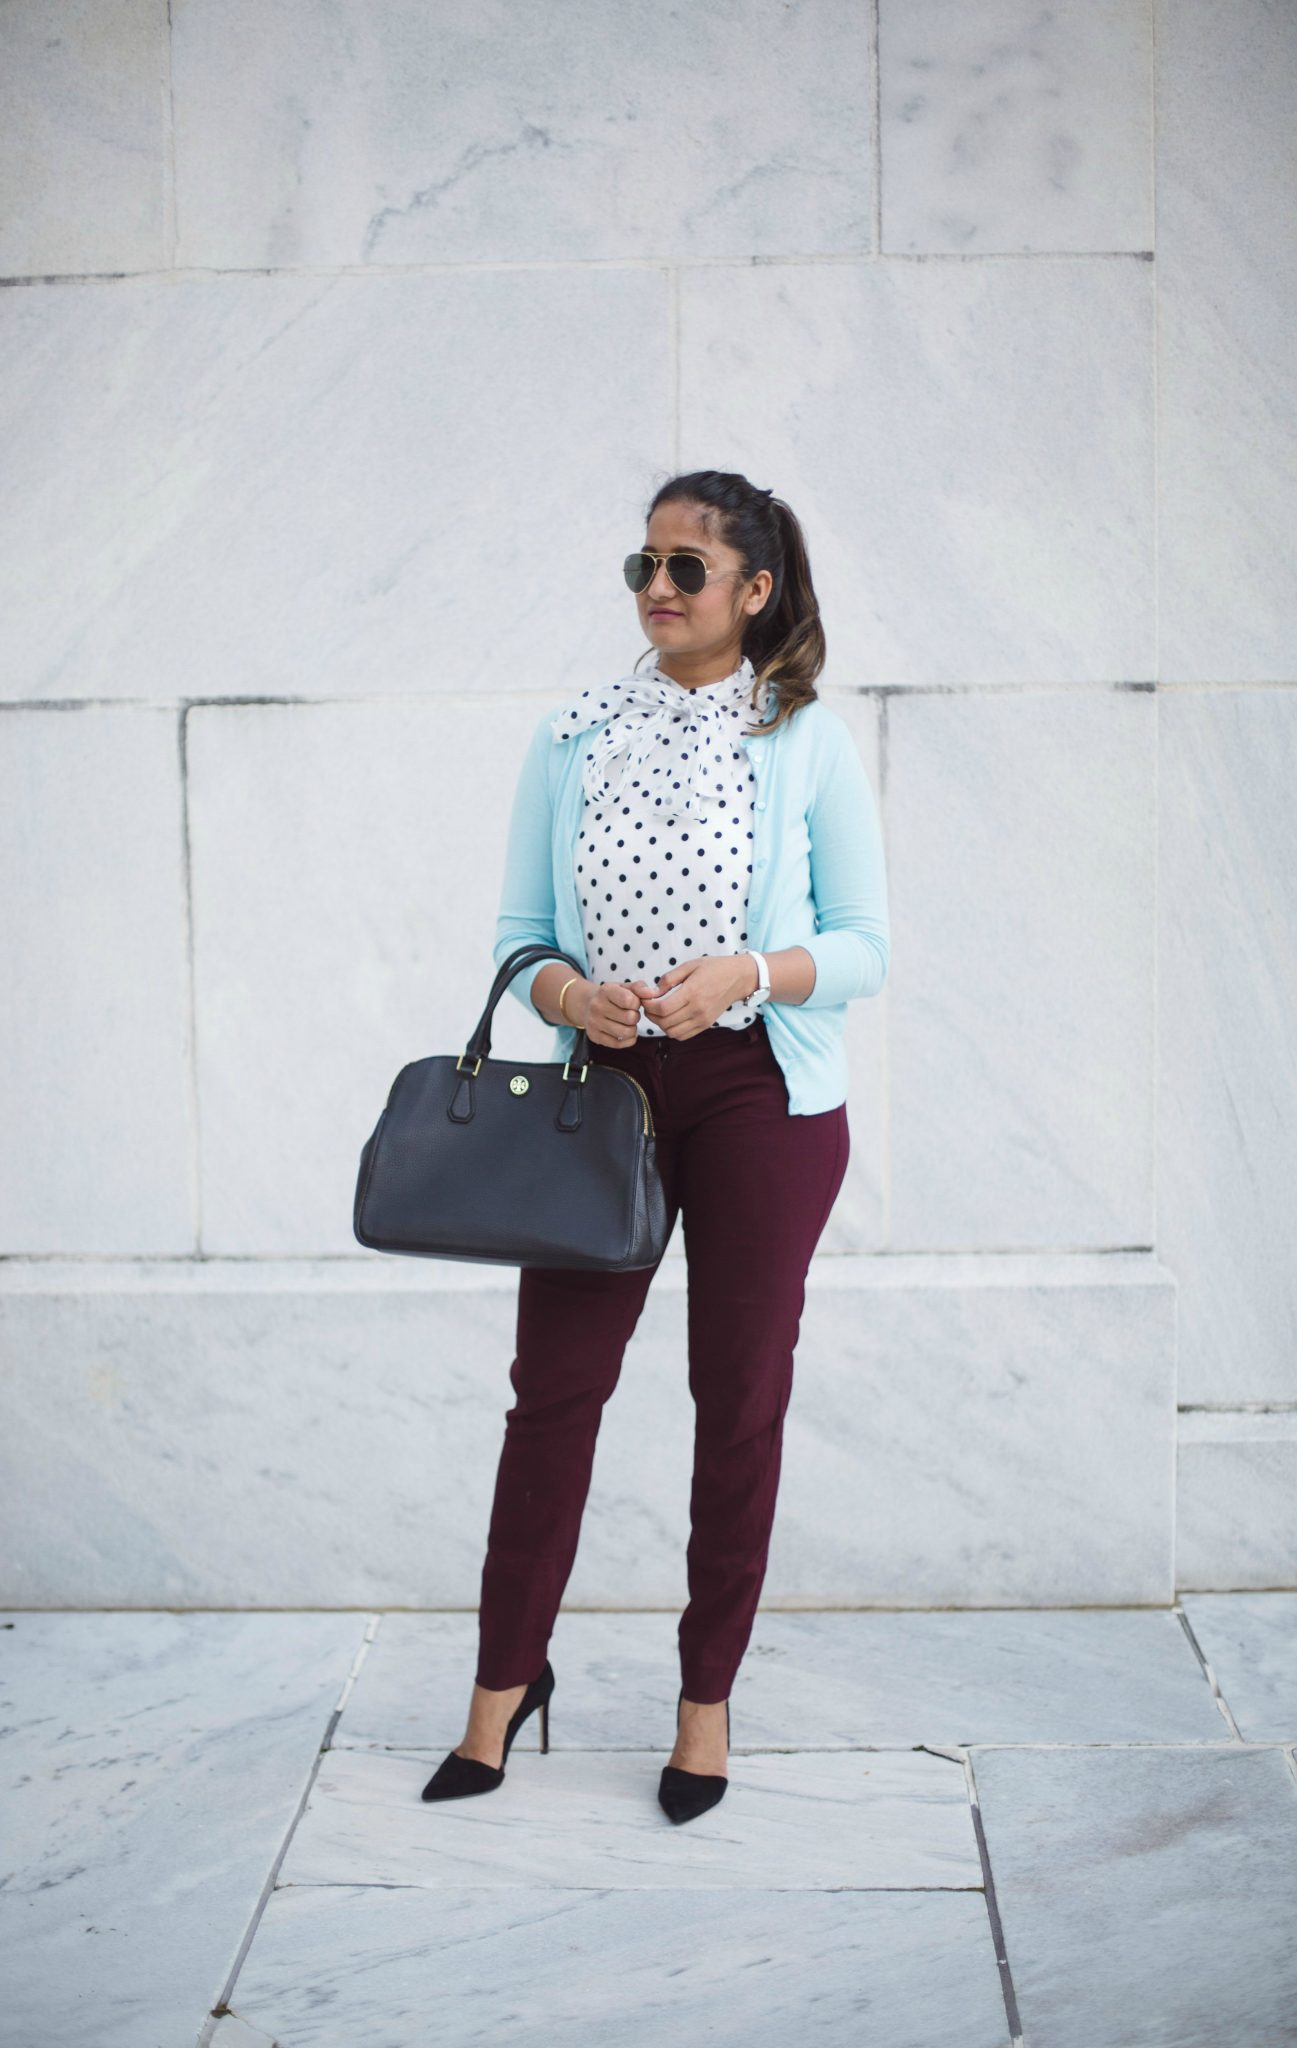 How to Wear Light Blue Cardigan to Work In 10 Ways